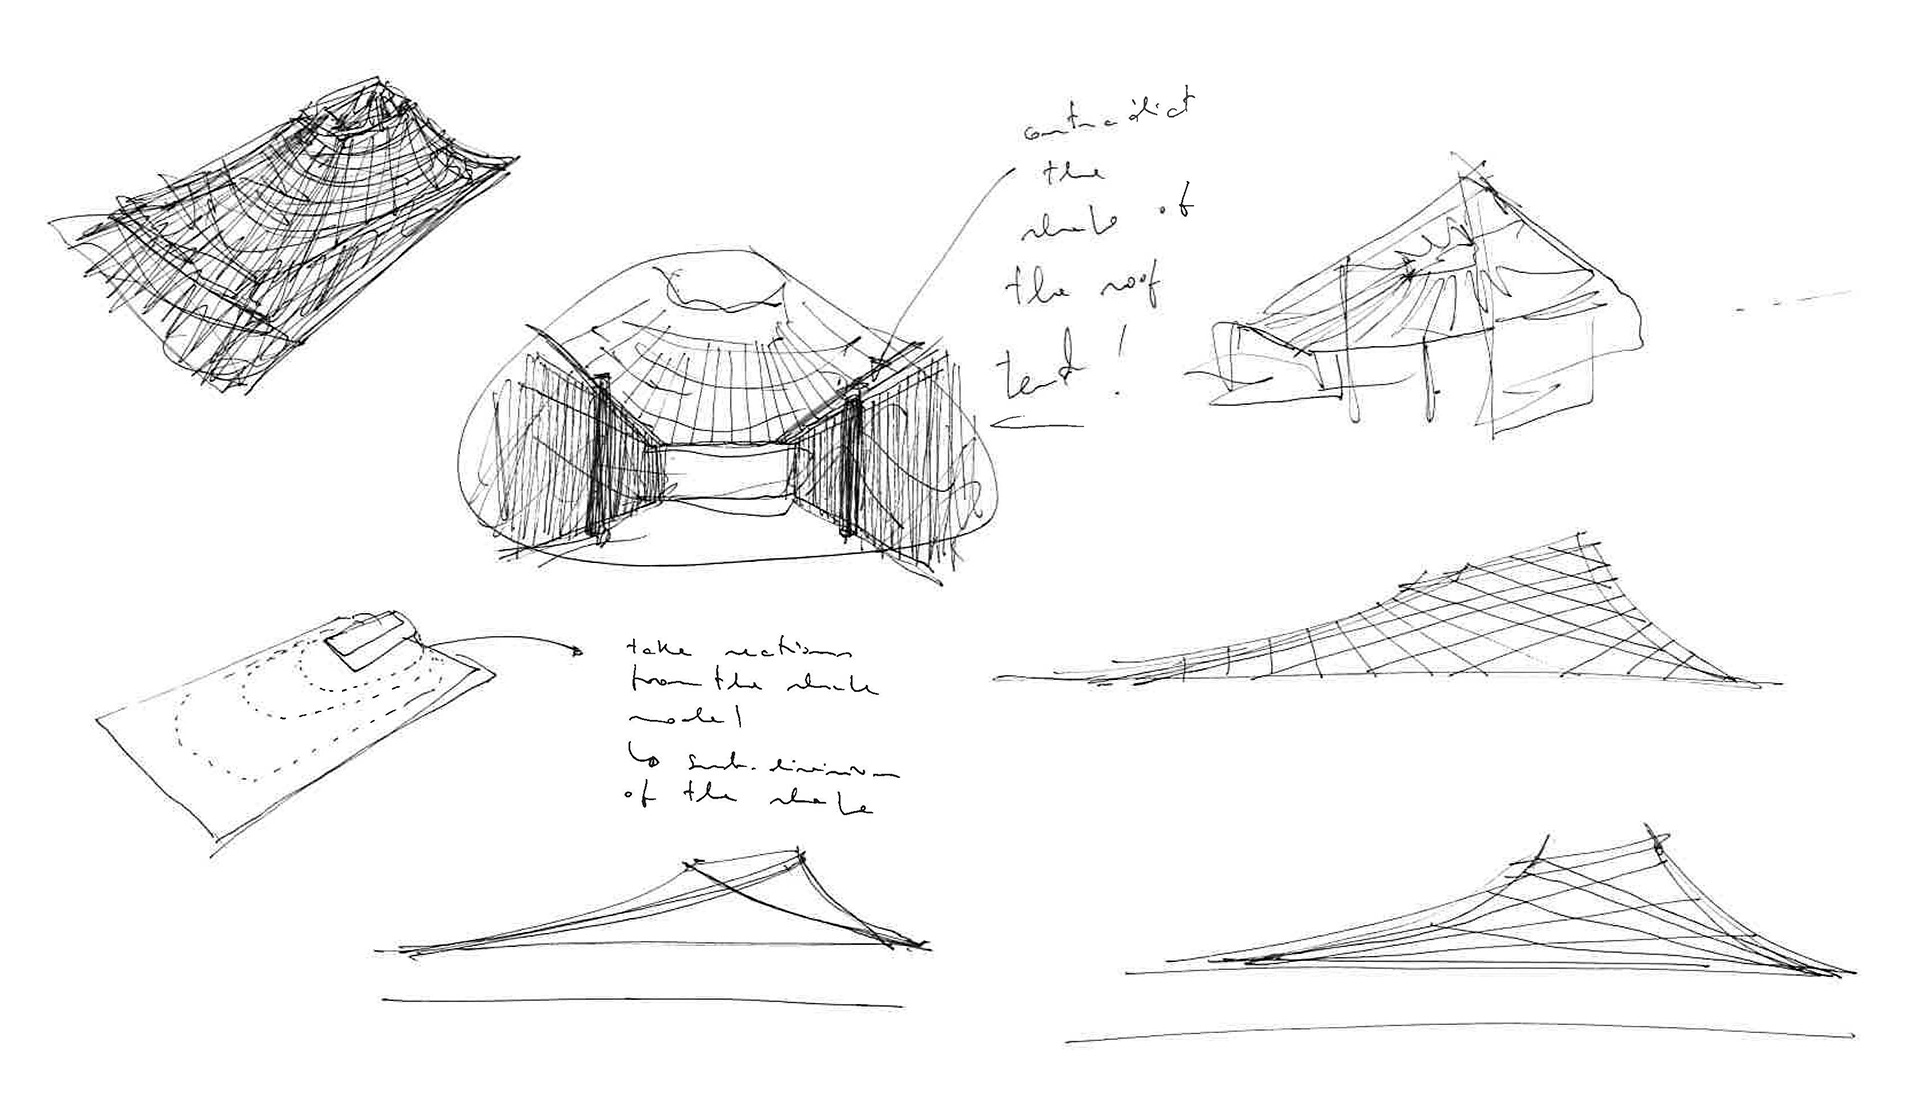 Conceptual sketch | House in a Garden, London by Gianni Botsford Architects | STIRworld